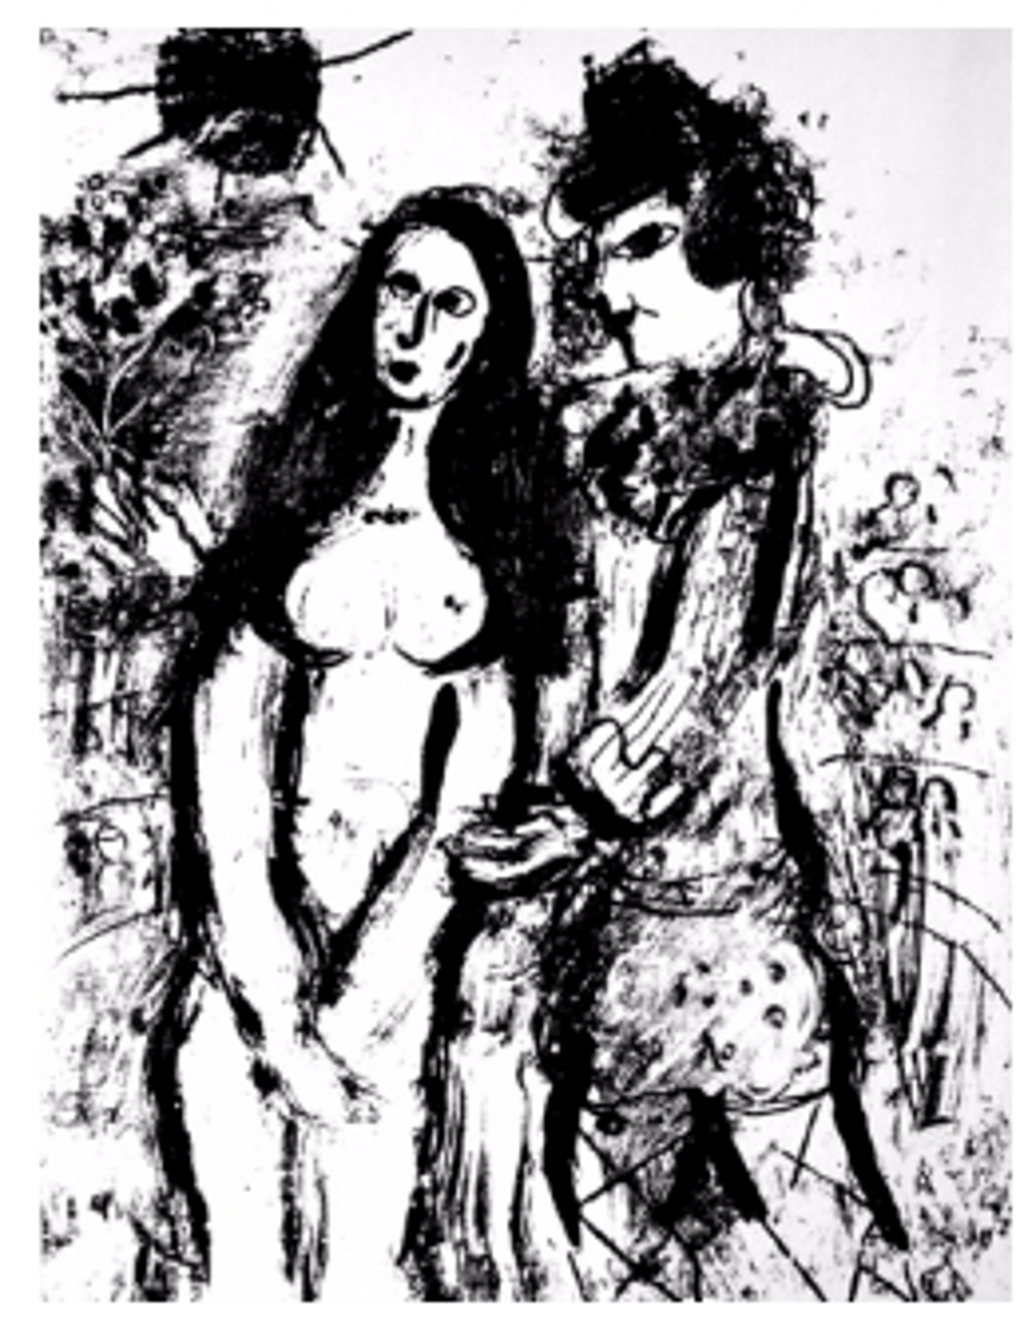 Clown In Love from Chagall Lithographs I by Marc Chagall (1887 - 1985)